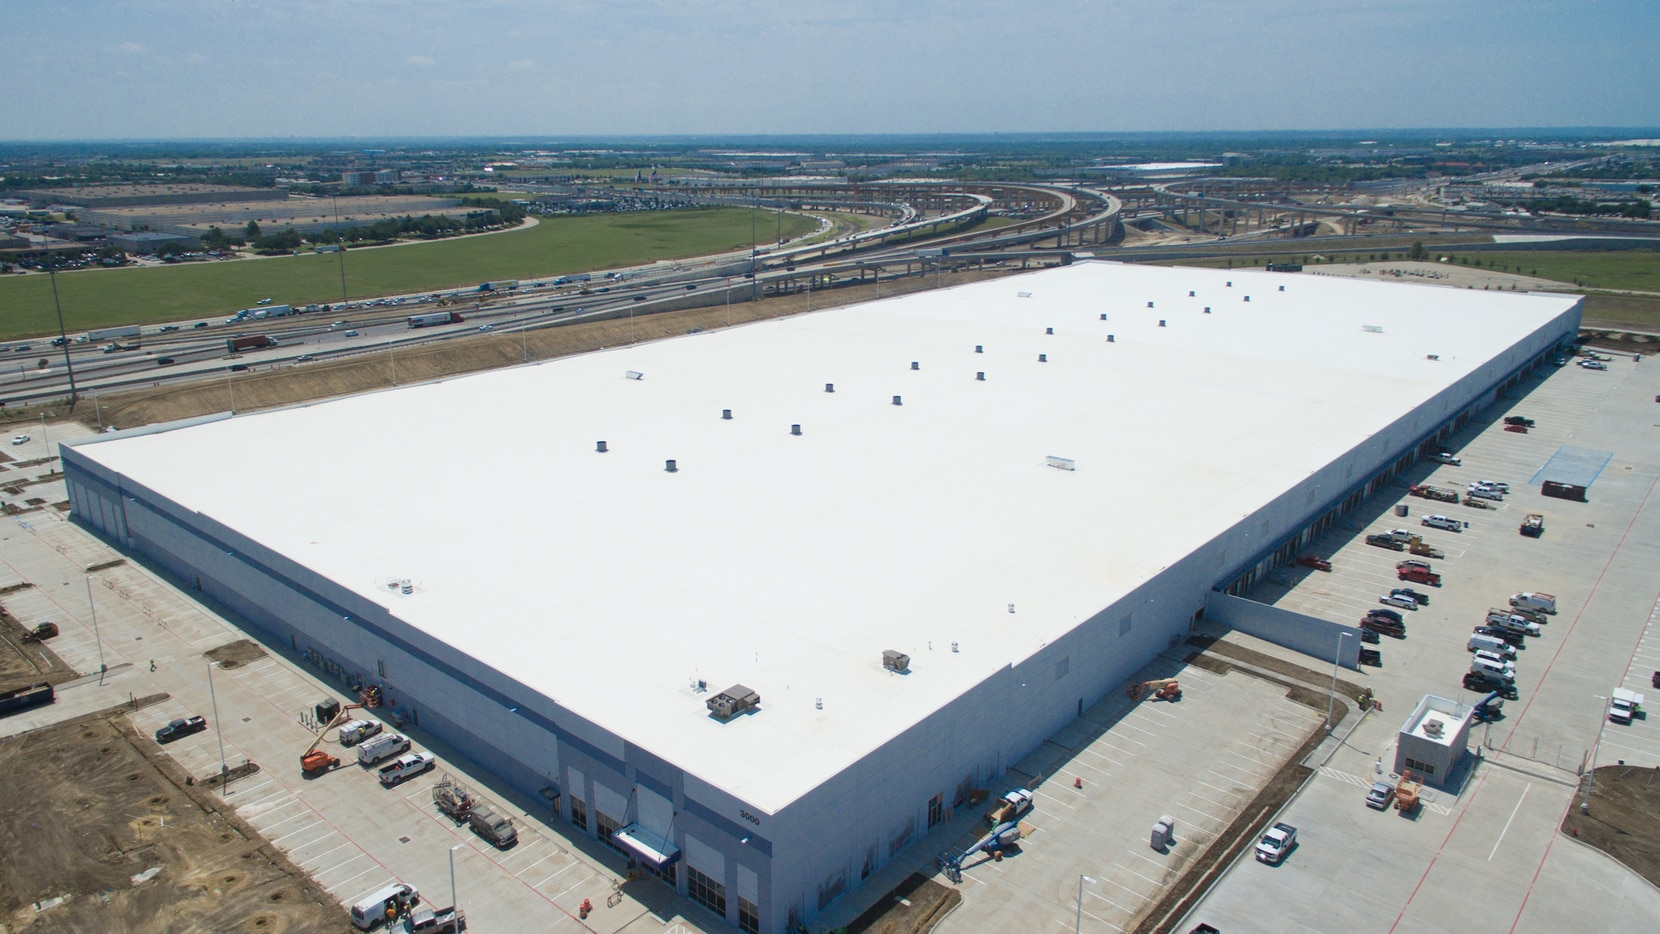 The new warehouse in North Fort Worth is leased to Campbell Soup and was bought by Transpacific Development Co. of California.